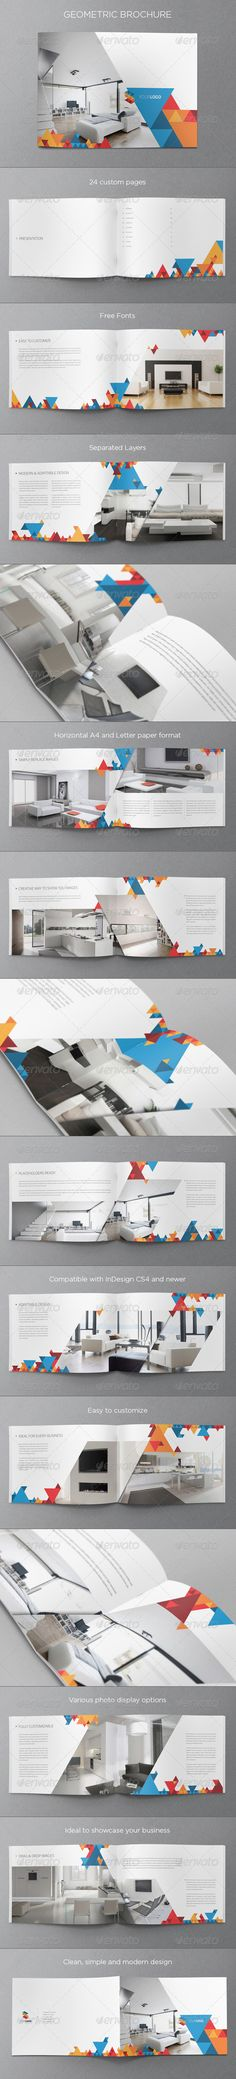 Modern Geometric Brochure - Corporate Brochures